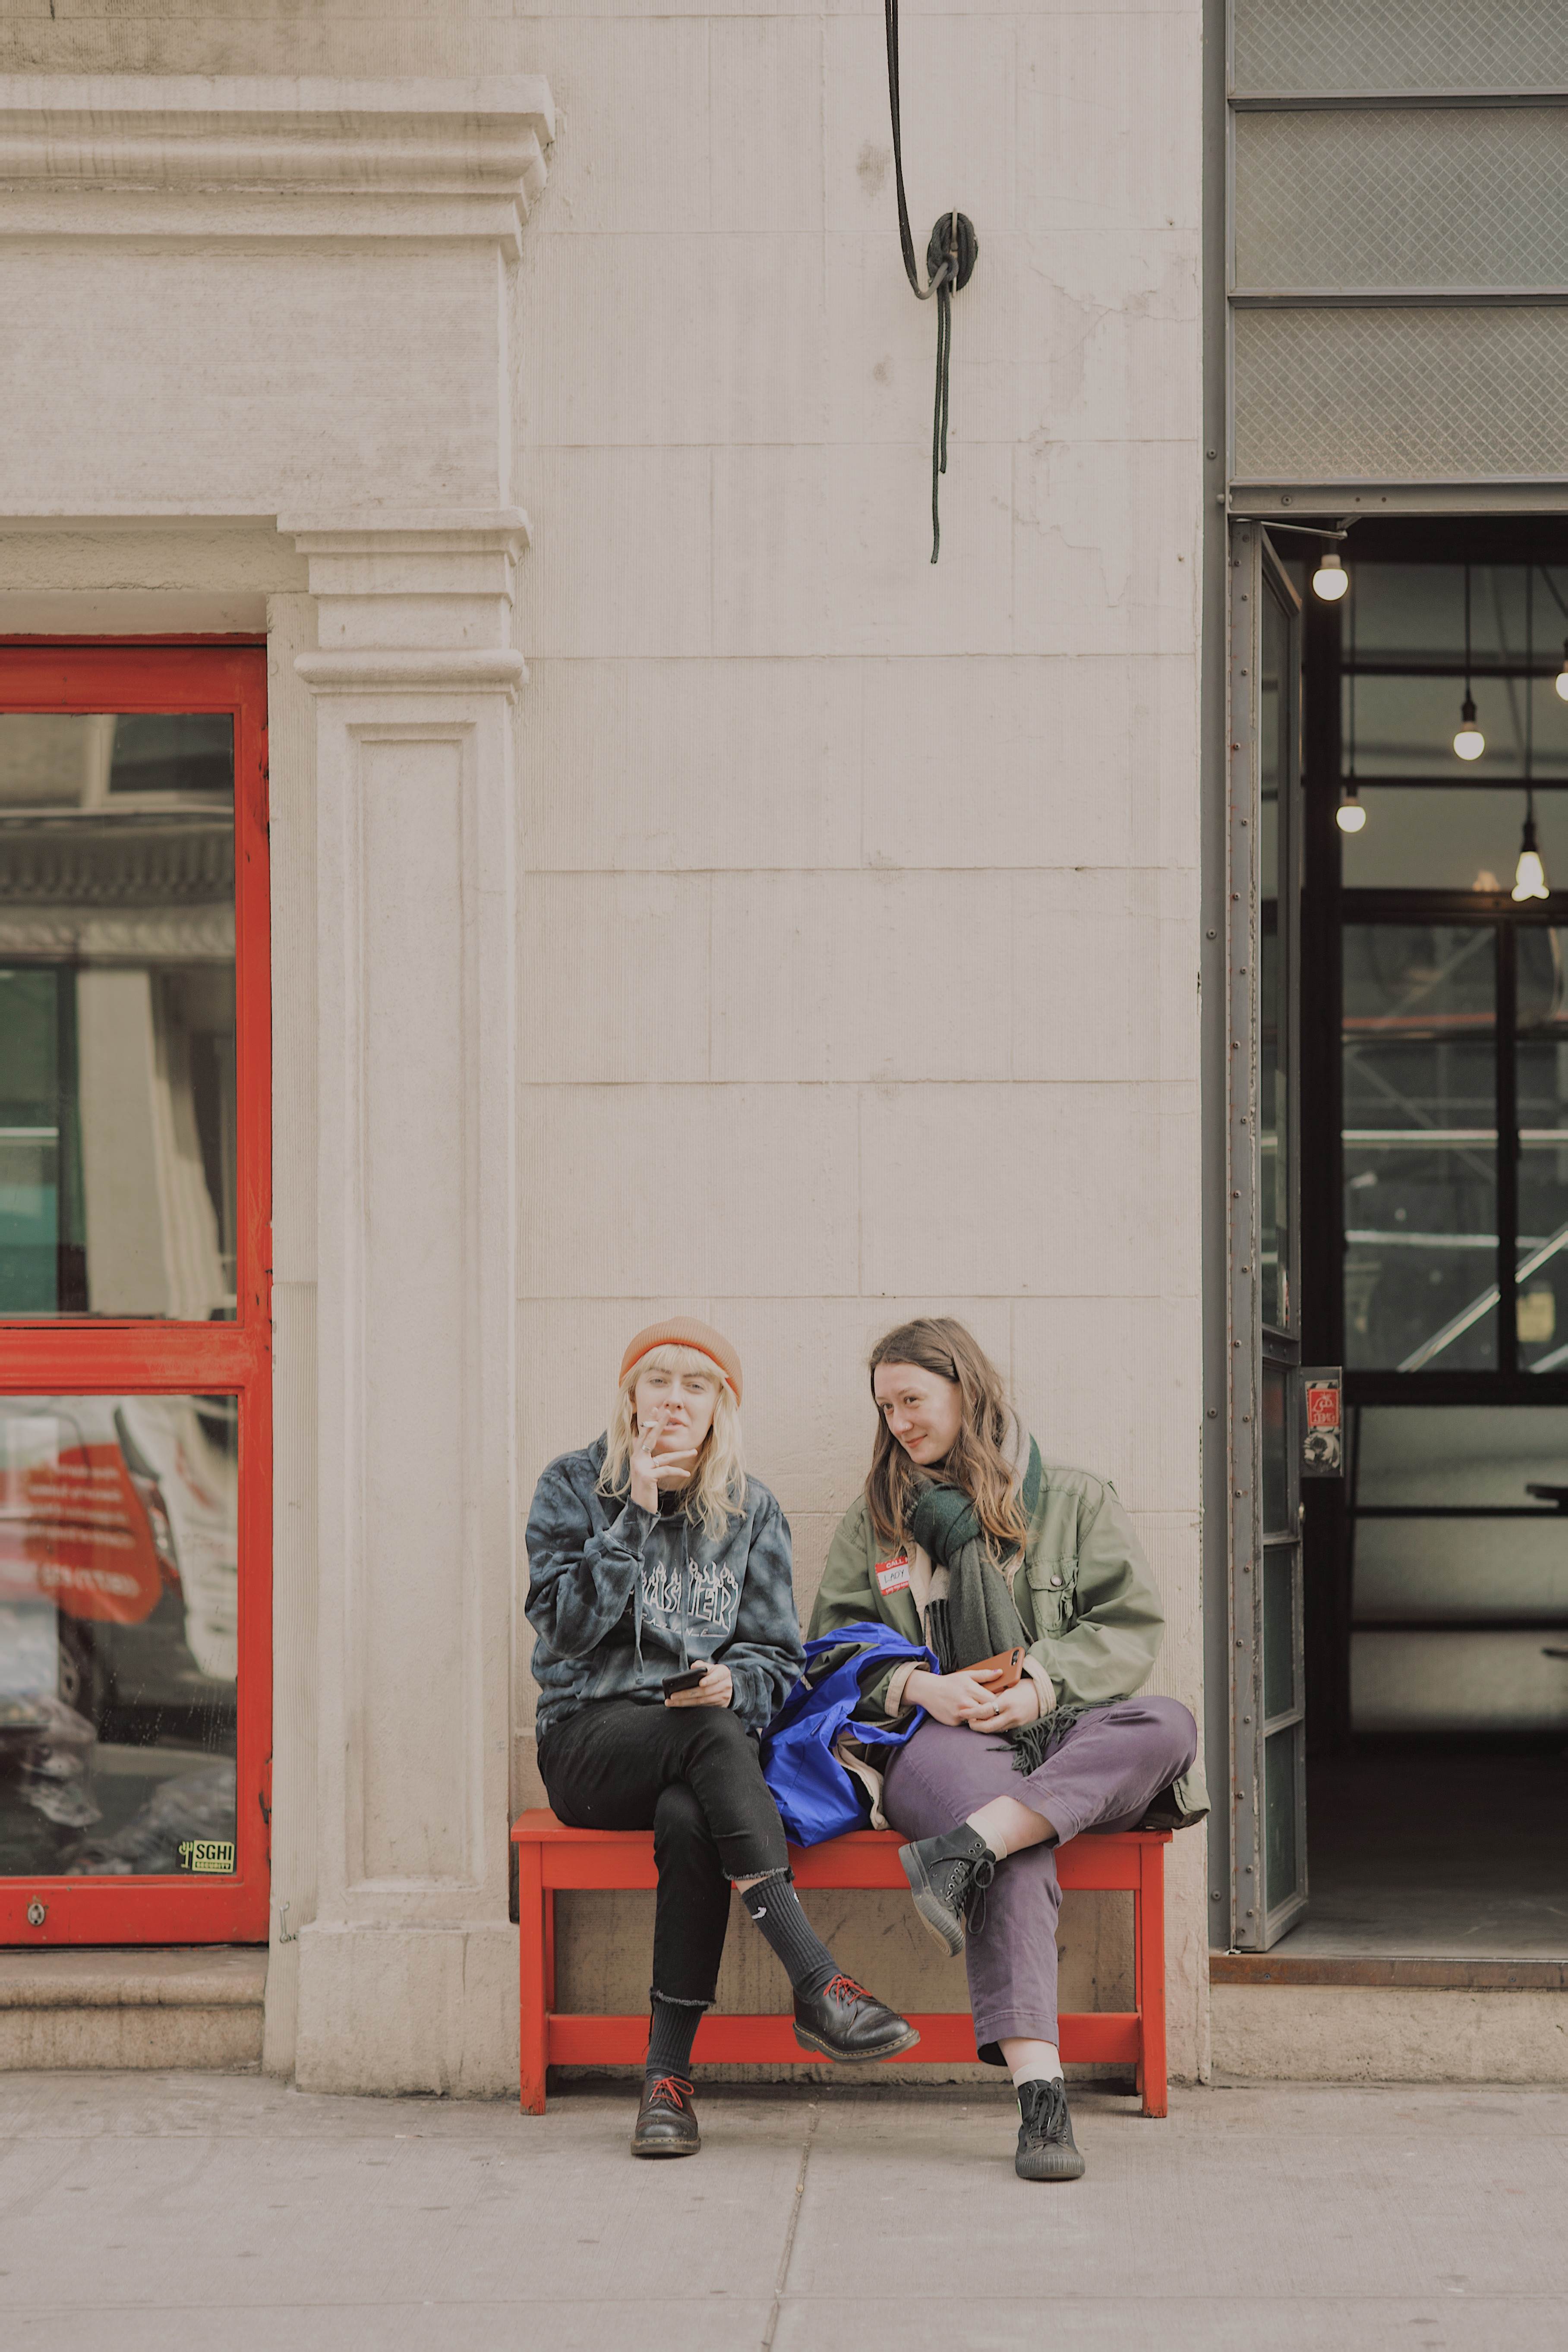 cde_thecoffeetographer_gasoline_alley_coffee_2020